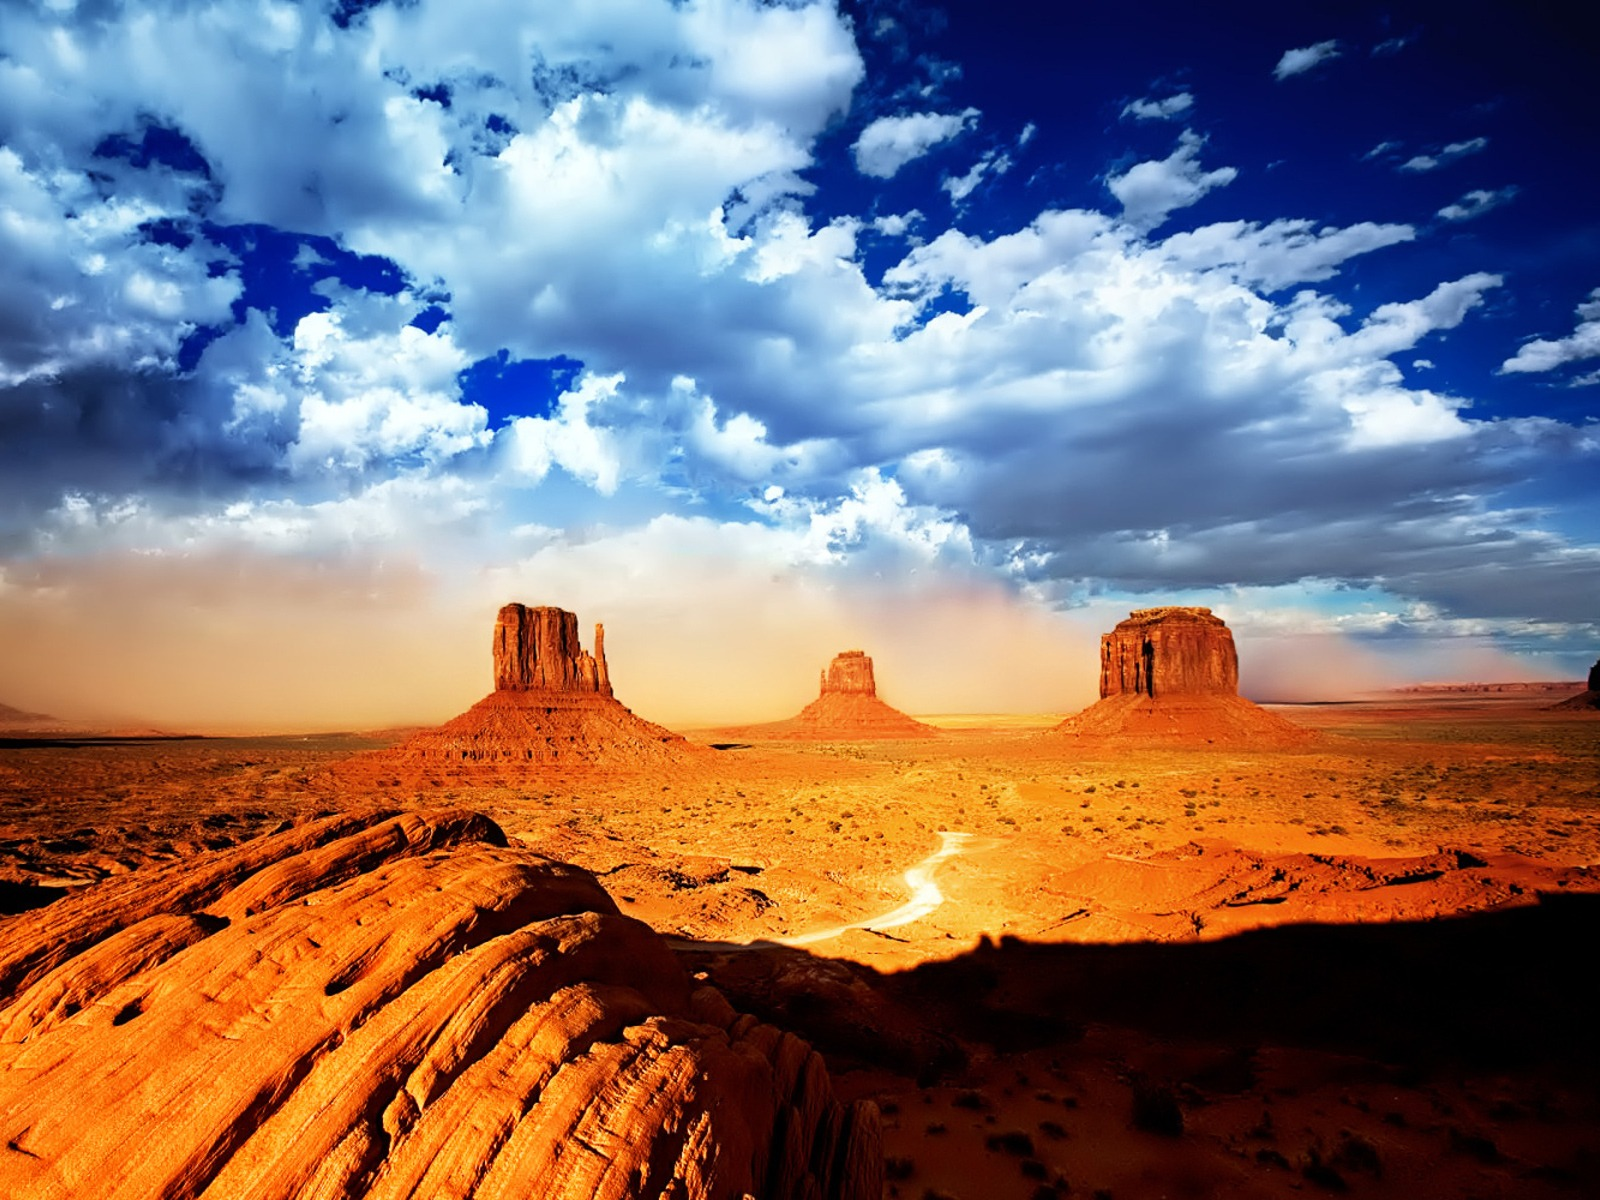 desert wallpaper landscape nature wallpapers in jpg format for free